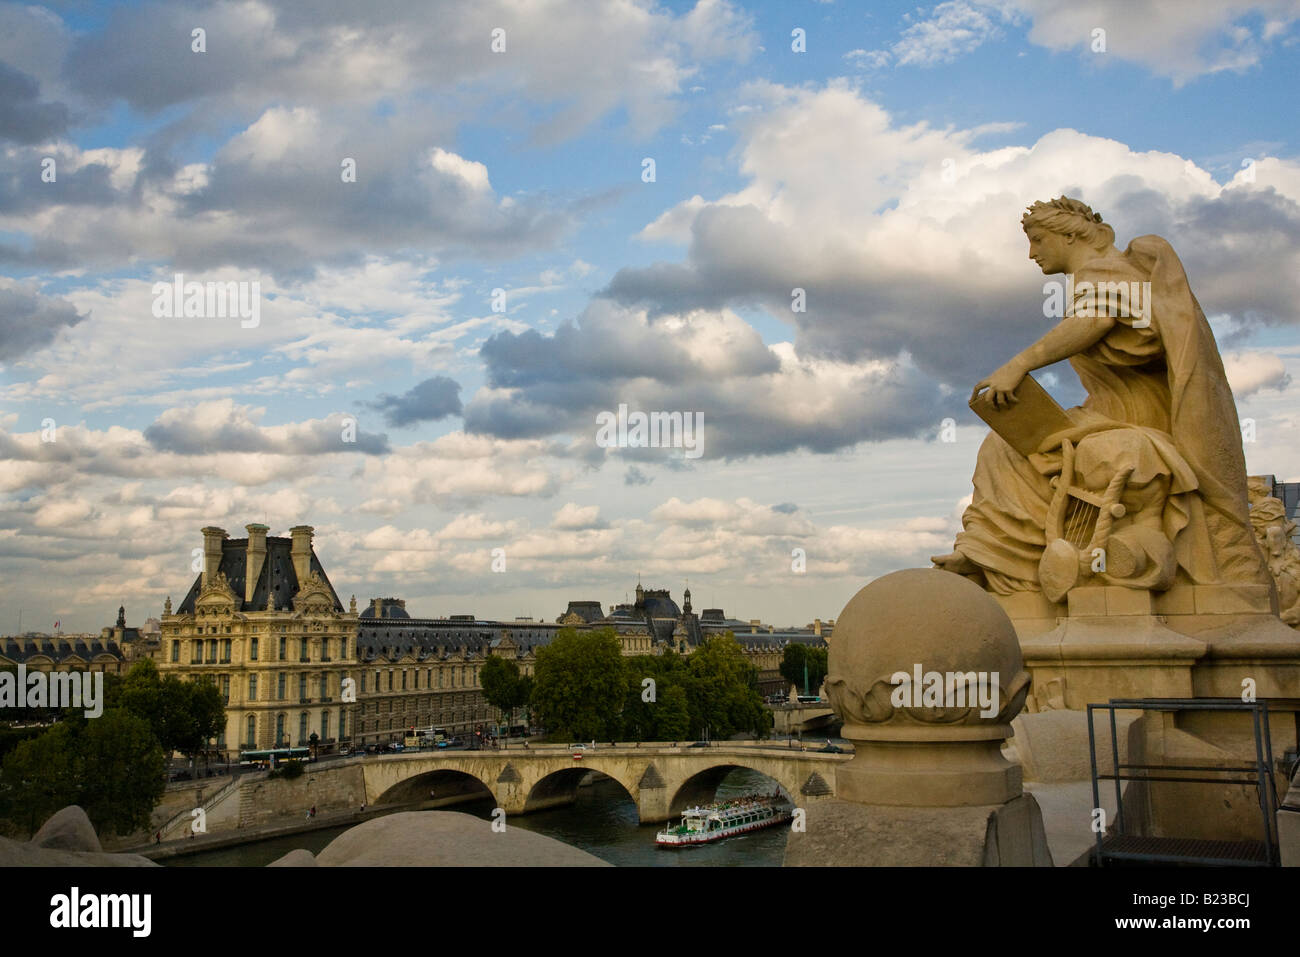 Statue on roof of Musee D'Orsay with dramatic sky background and elevated view of sightseeing boat on the river Seine by famous art Museum the Louvre Stock Photo